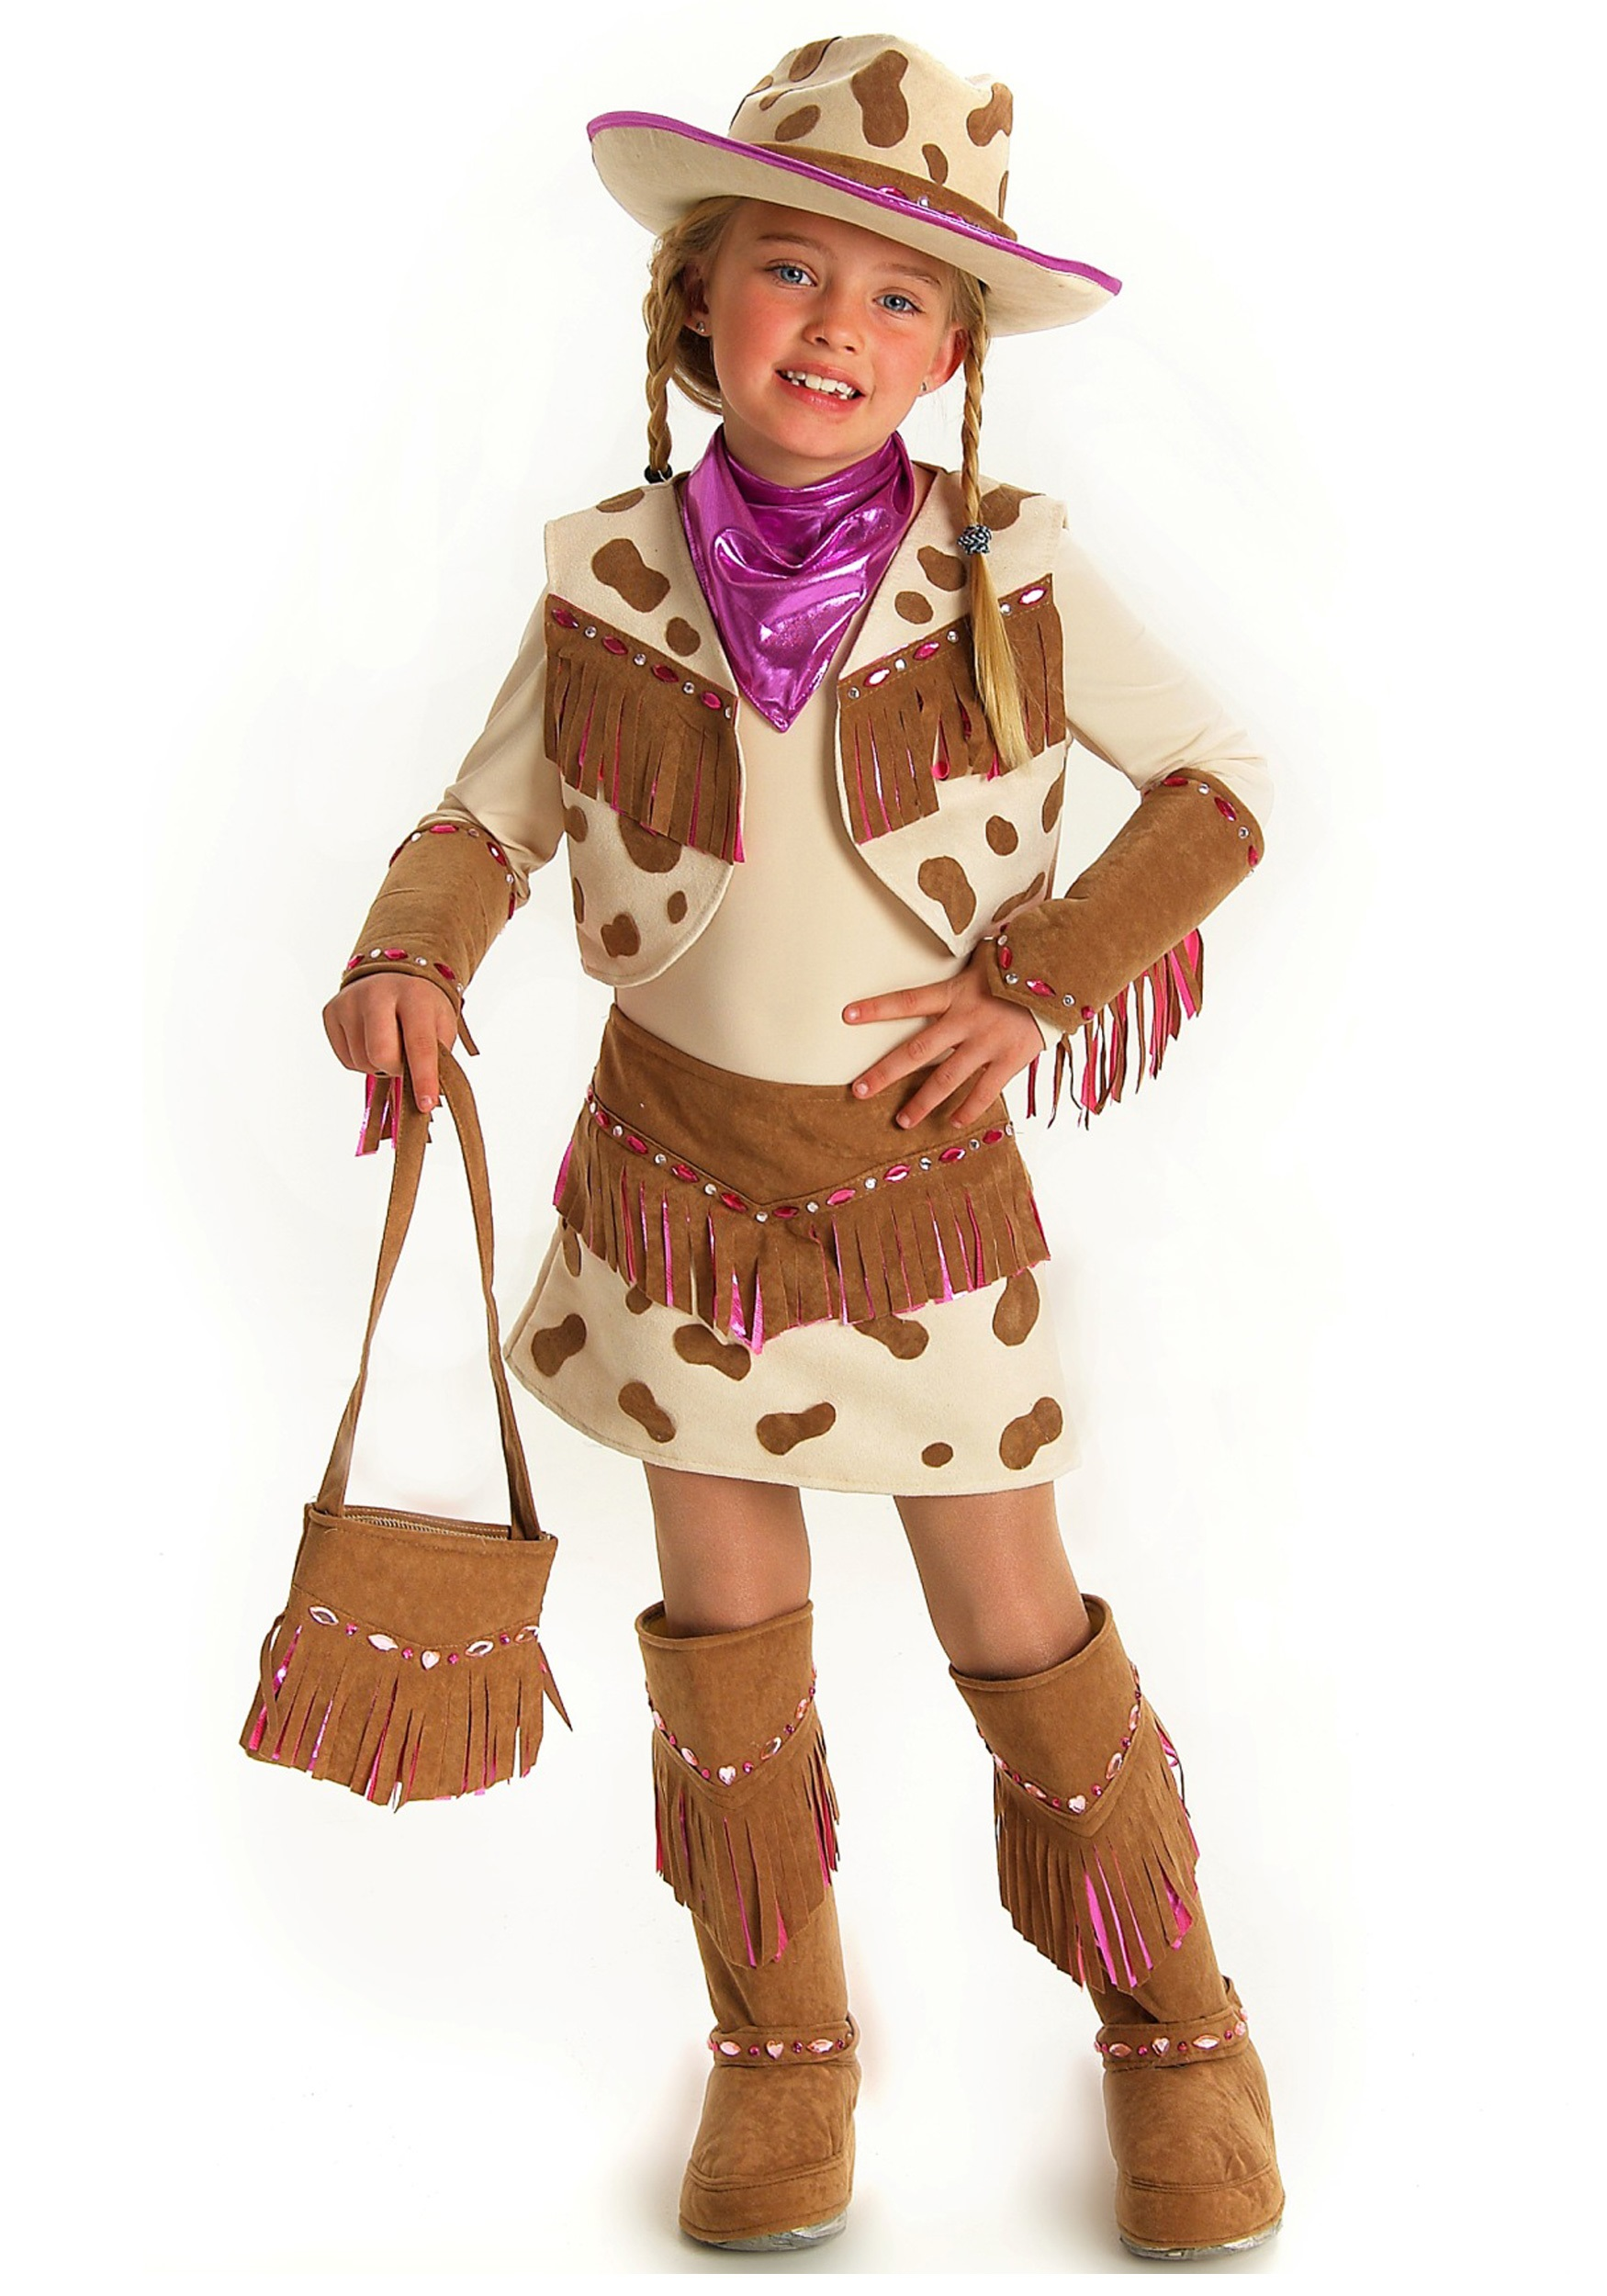 Cowboy costume for girls - photo#18